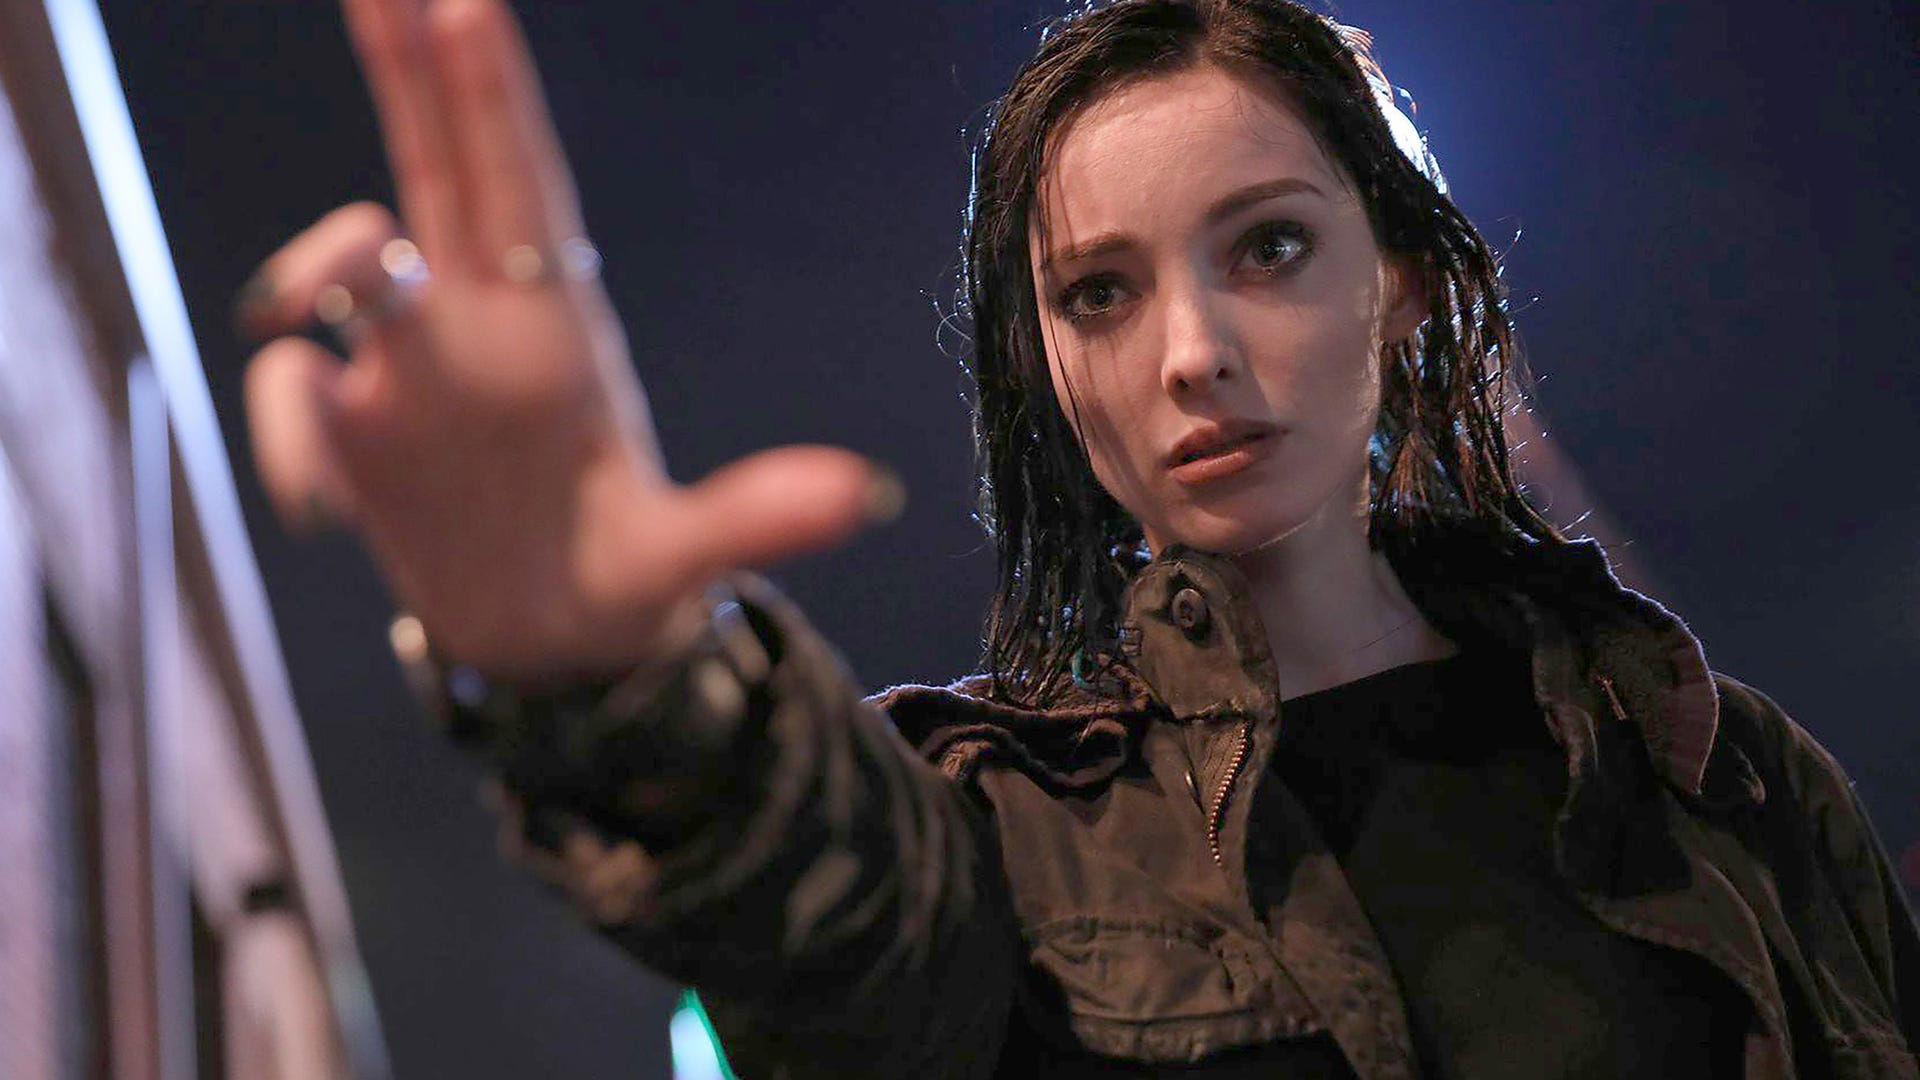 Emma Dumont, The Gifted